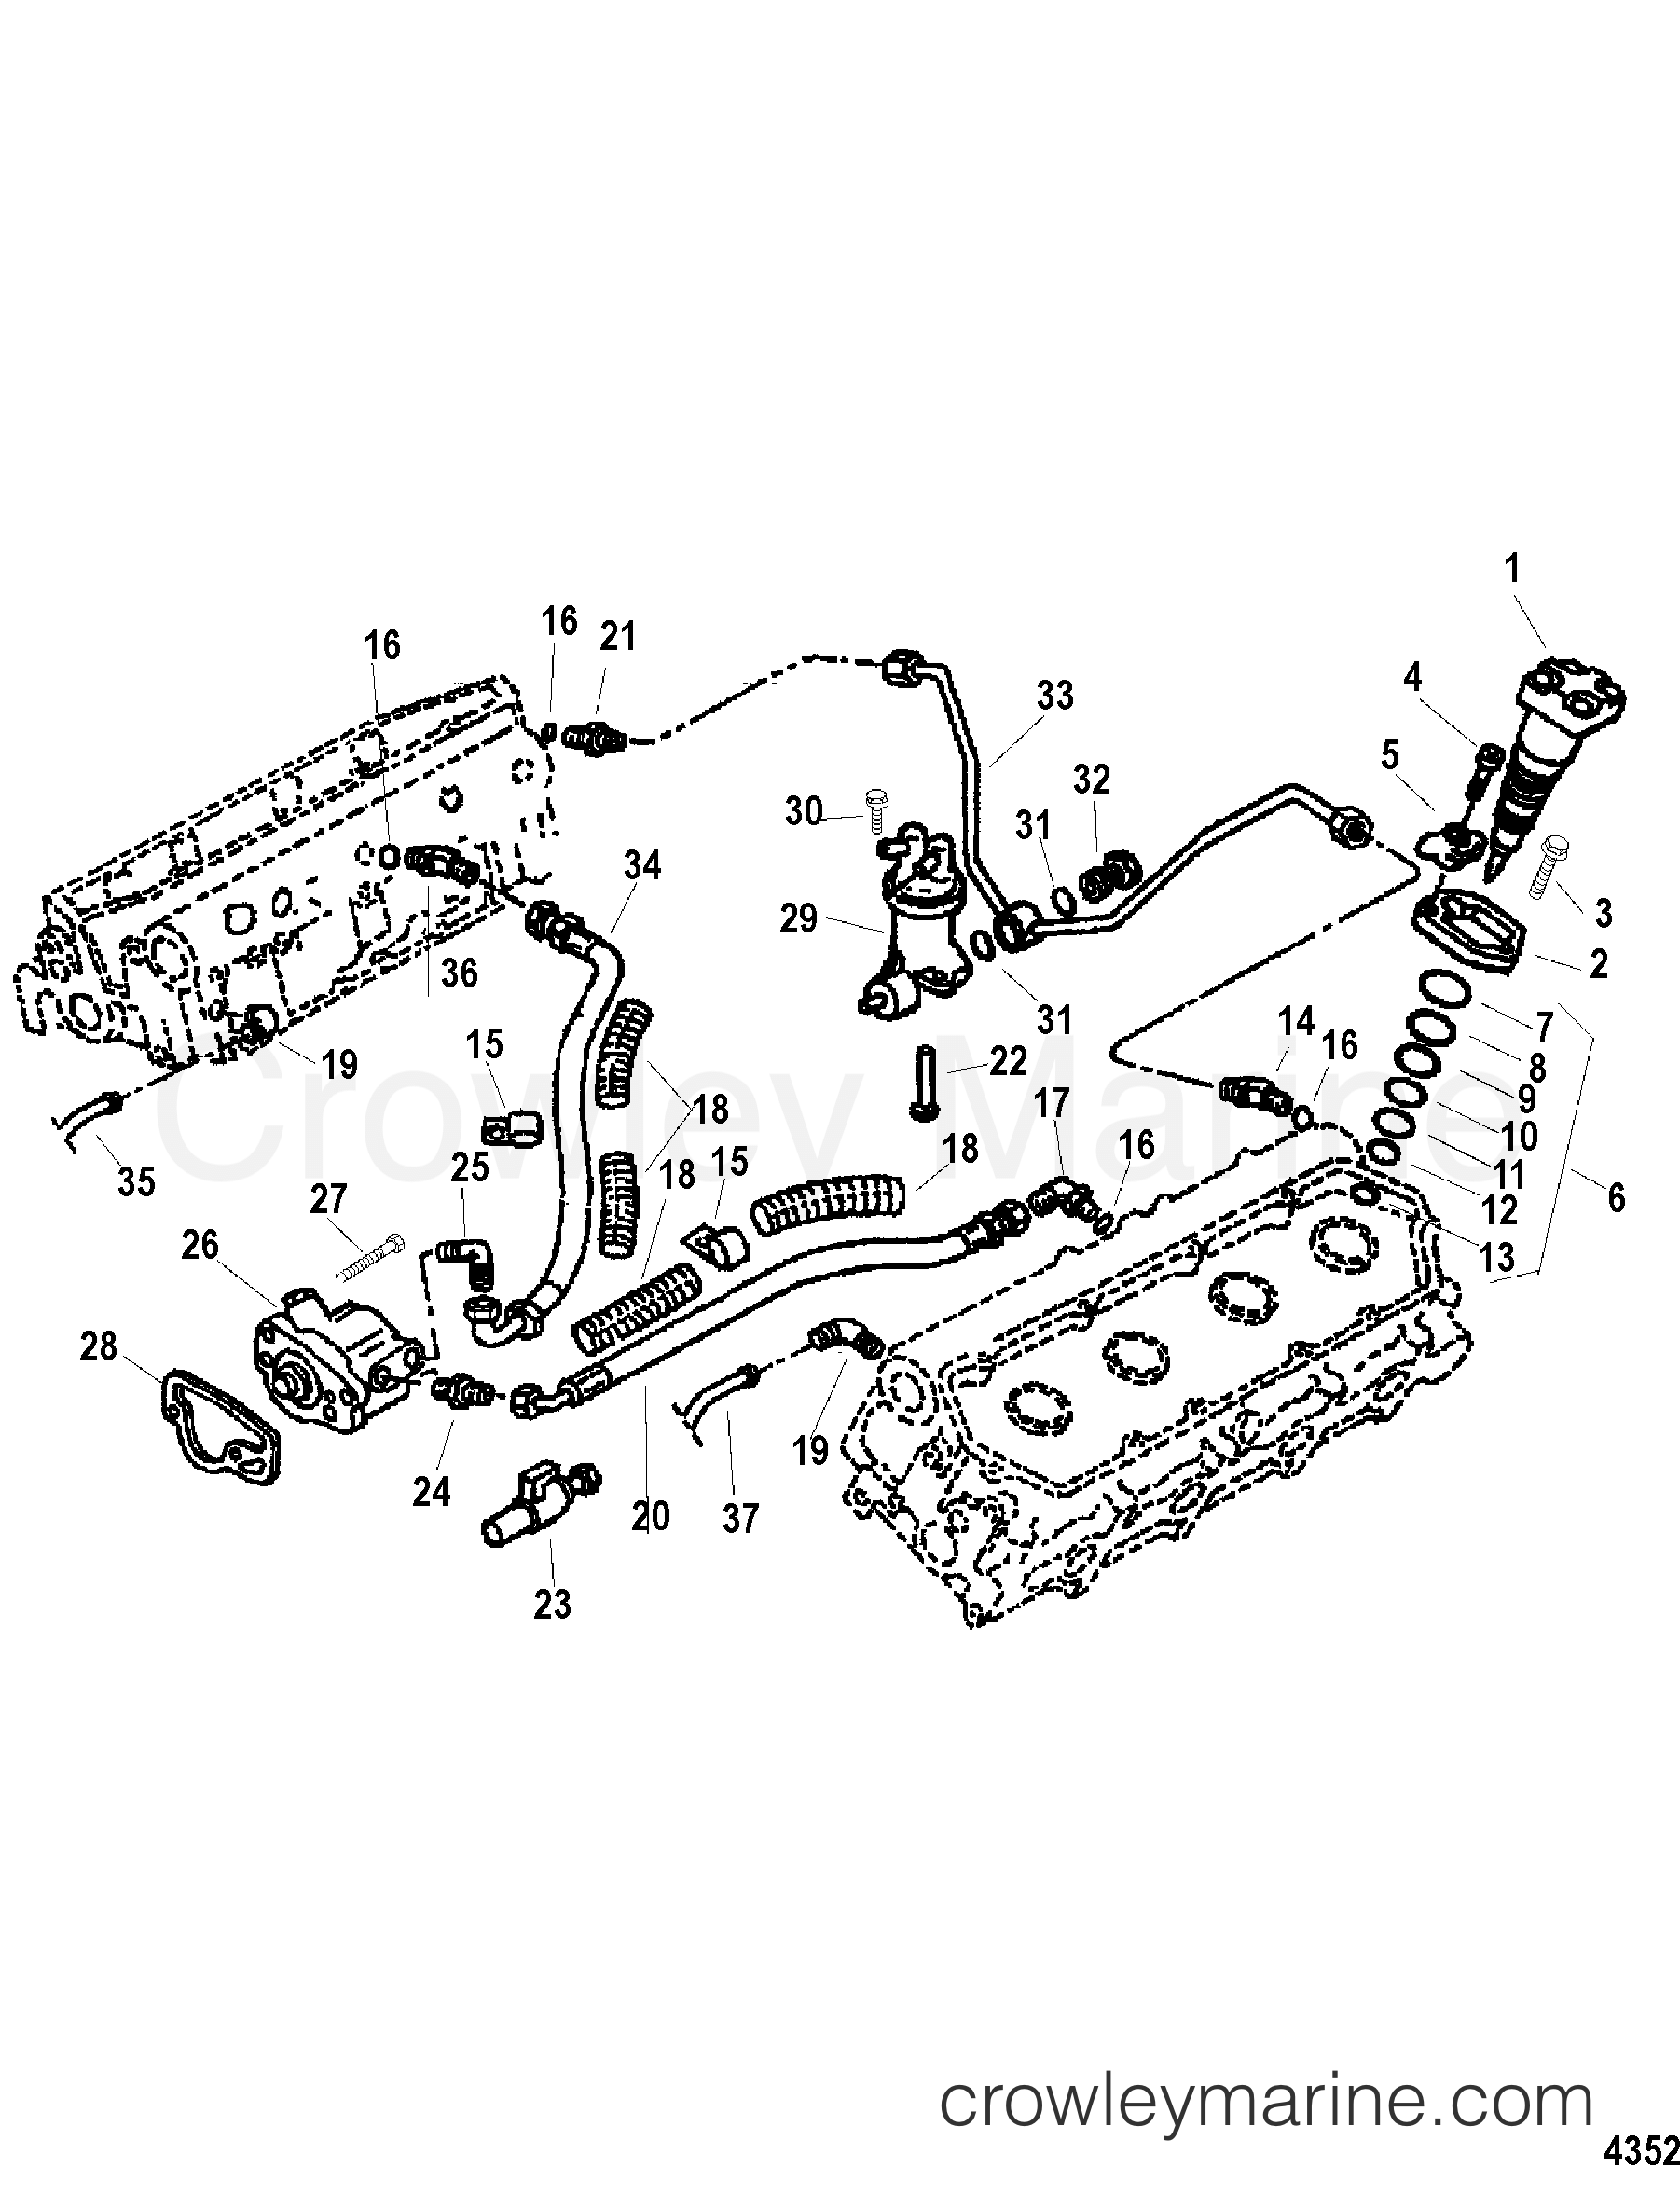 Injector Pressure And Fuel Pump